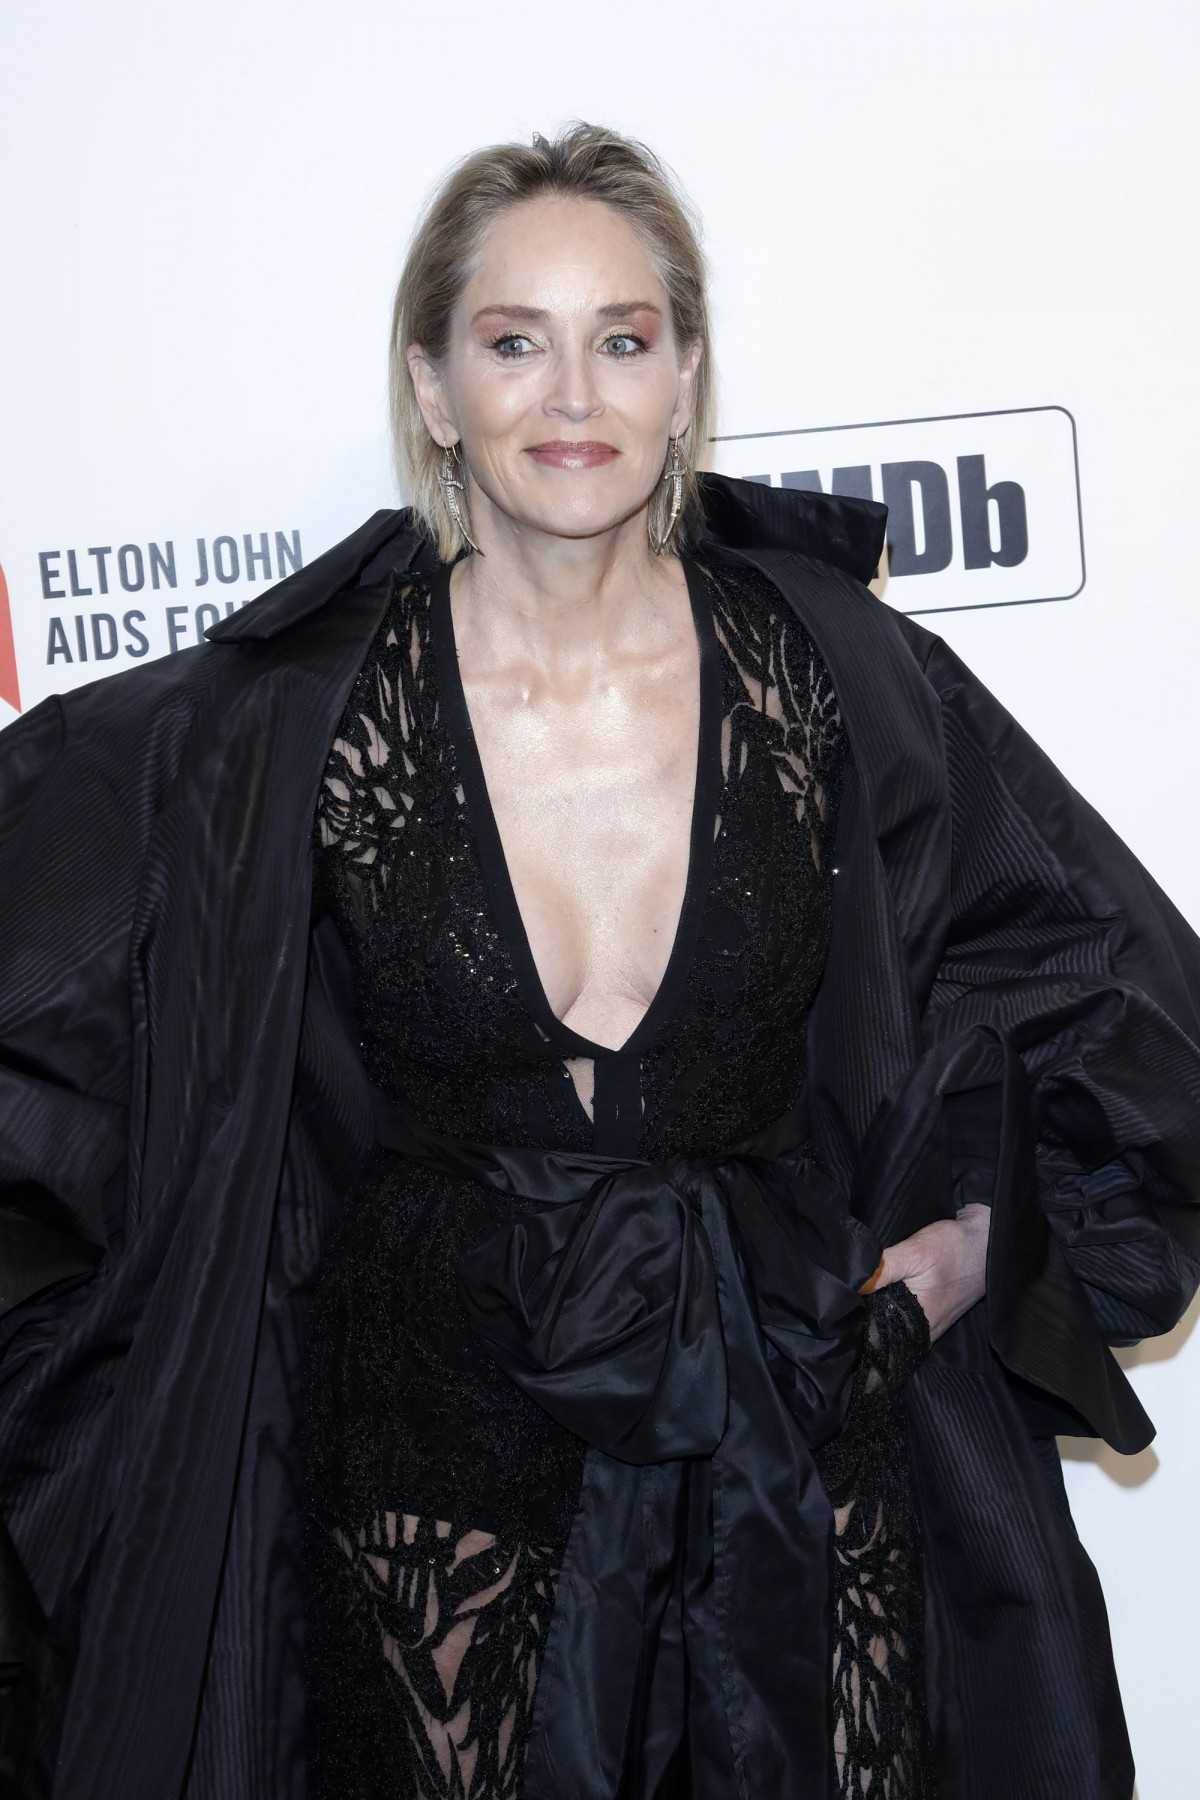 Sharon Stone at the after-party for Elto...